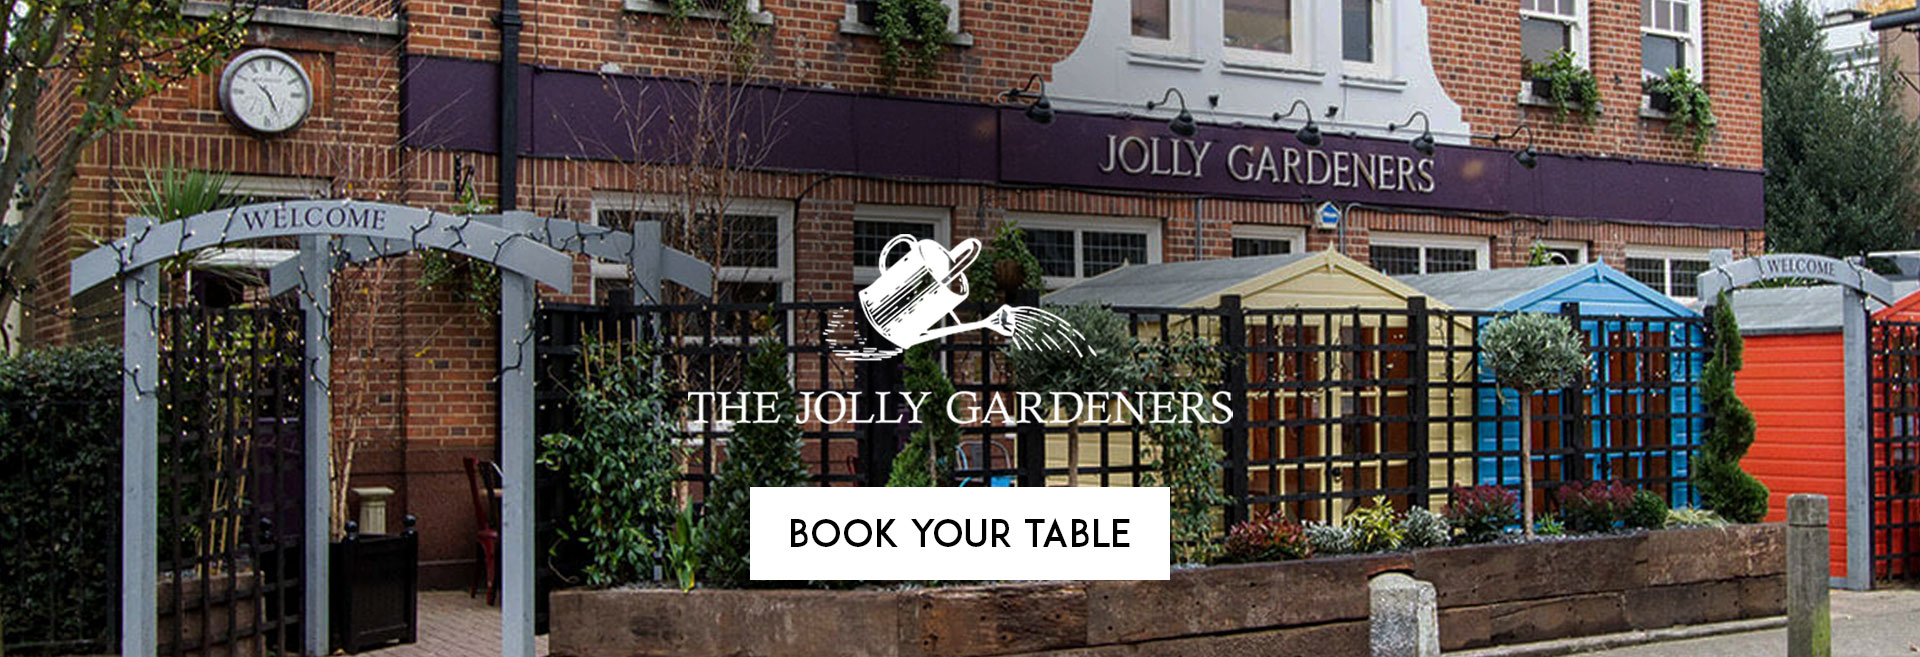 Book Your Table at The Jolly Gardeners